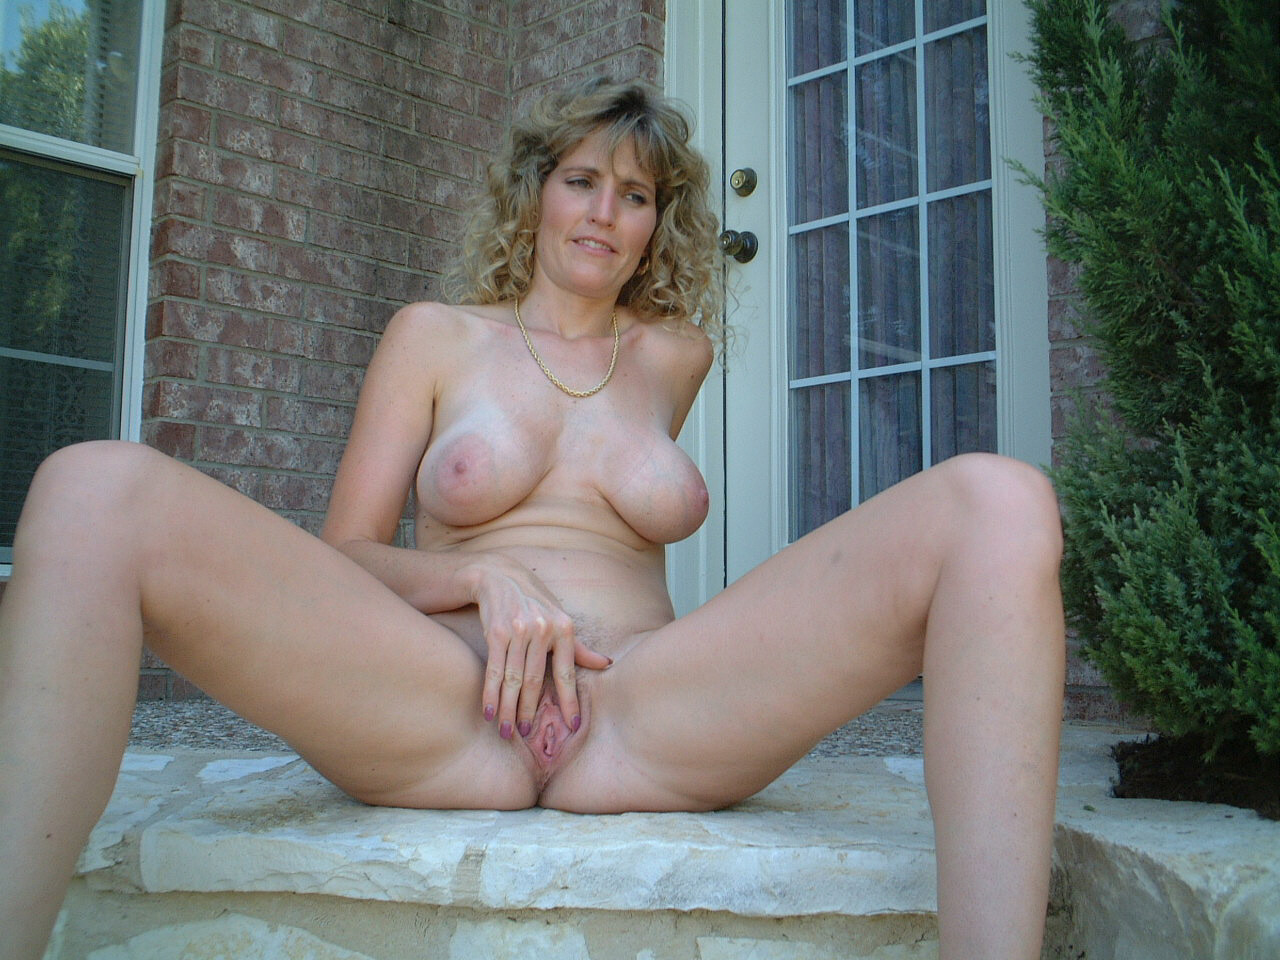 were mature milf vacation amateur cuckold consider, that you commit